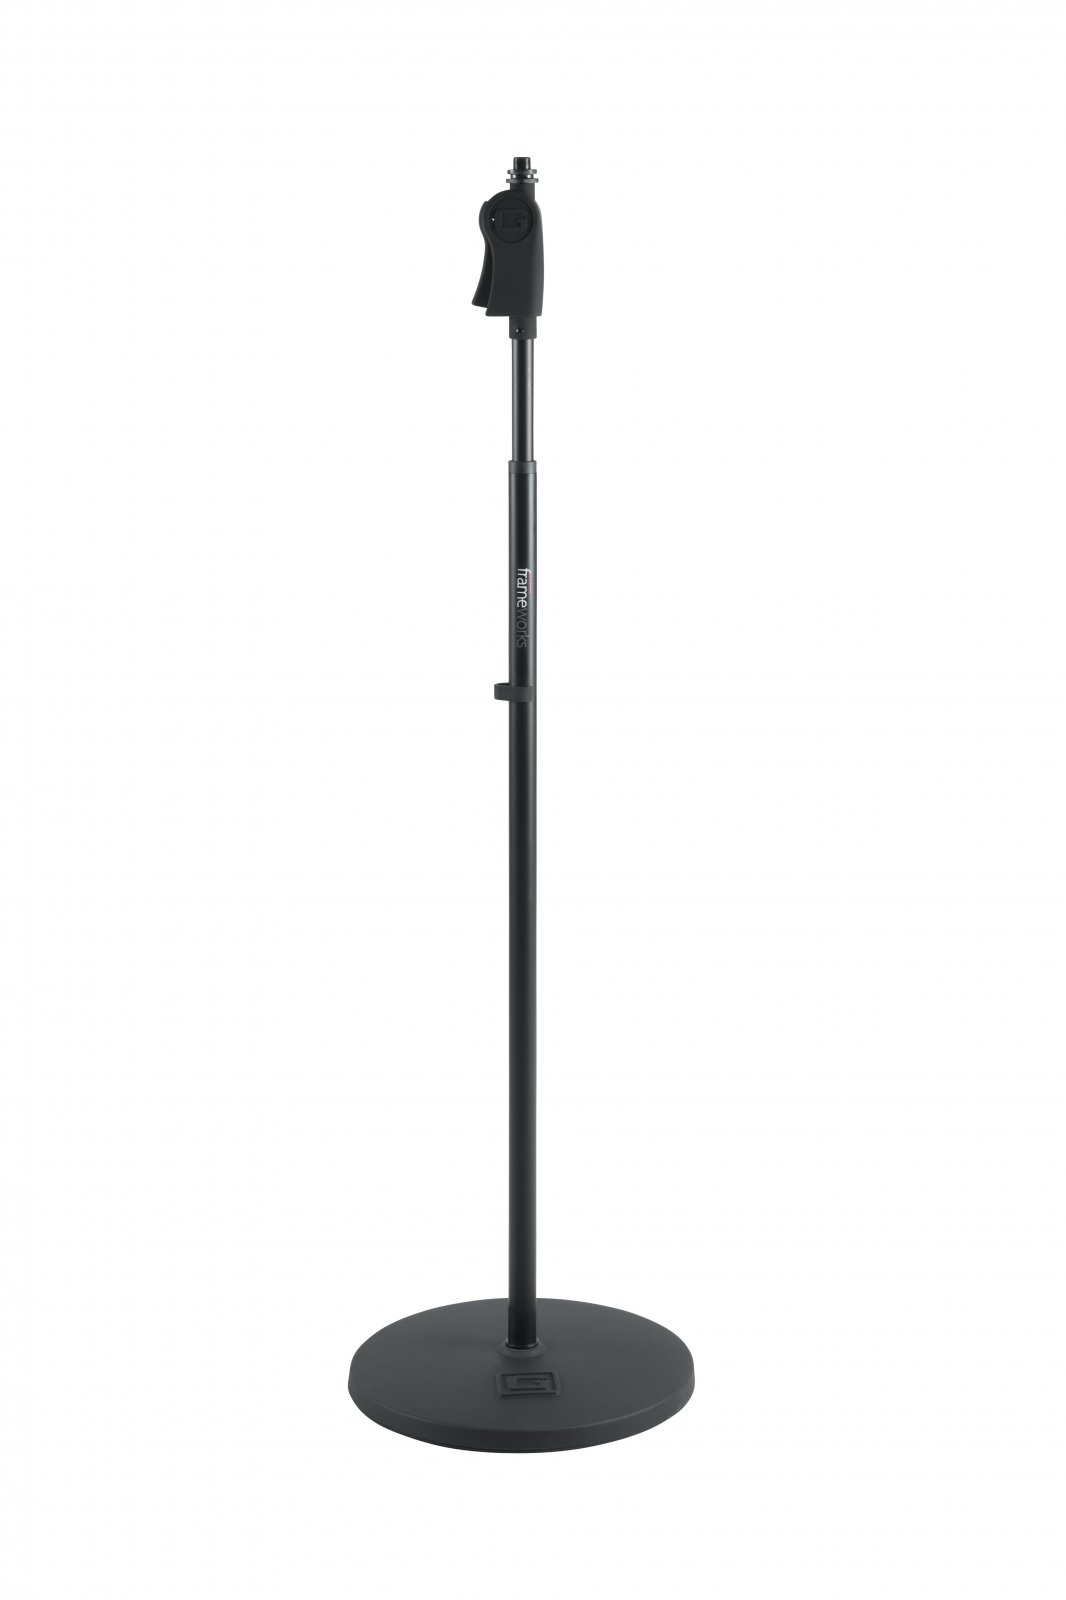 Gator Frameworks Gfw-mic-1201 Deluxe 12 Round Base Mic Stand